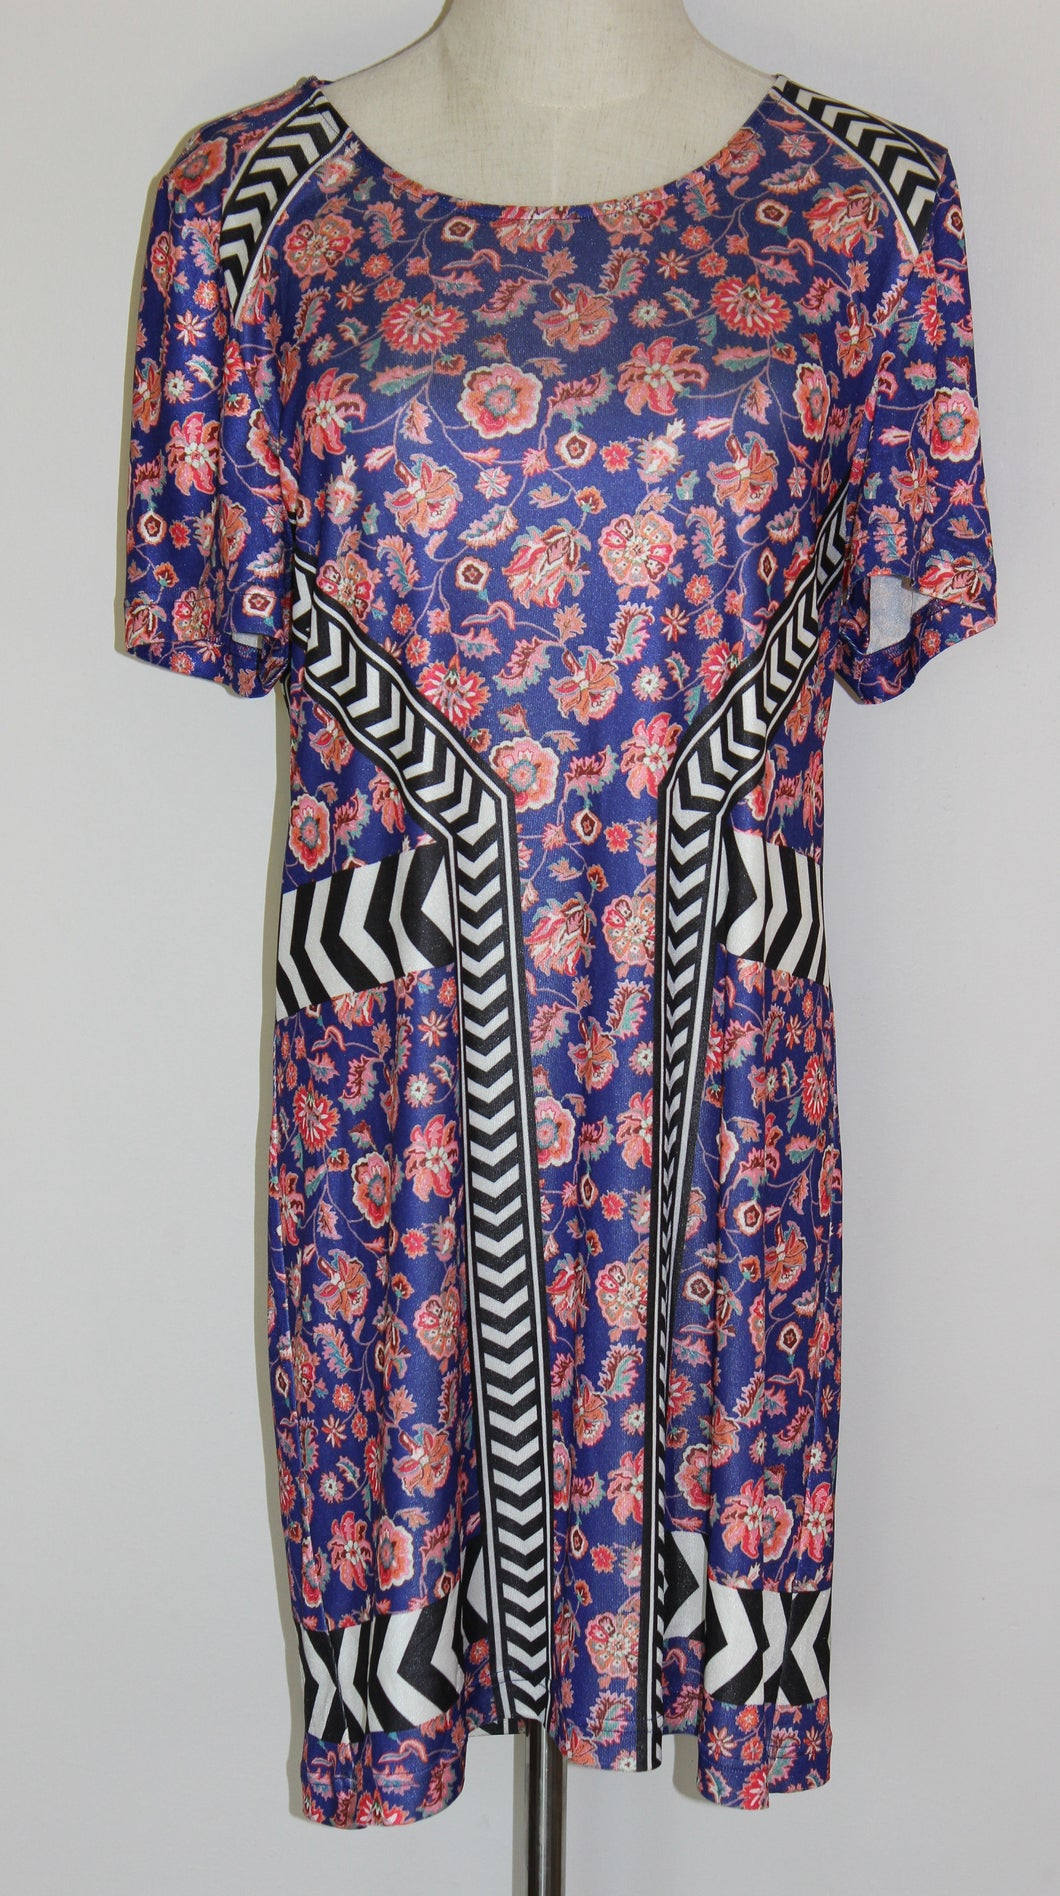 MINKPINK Dress Size S